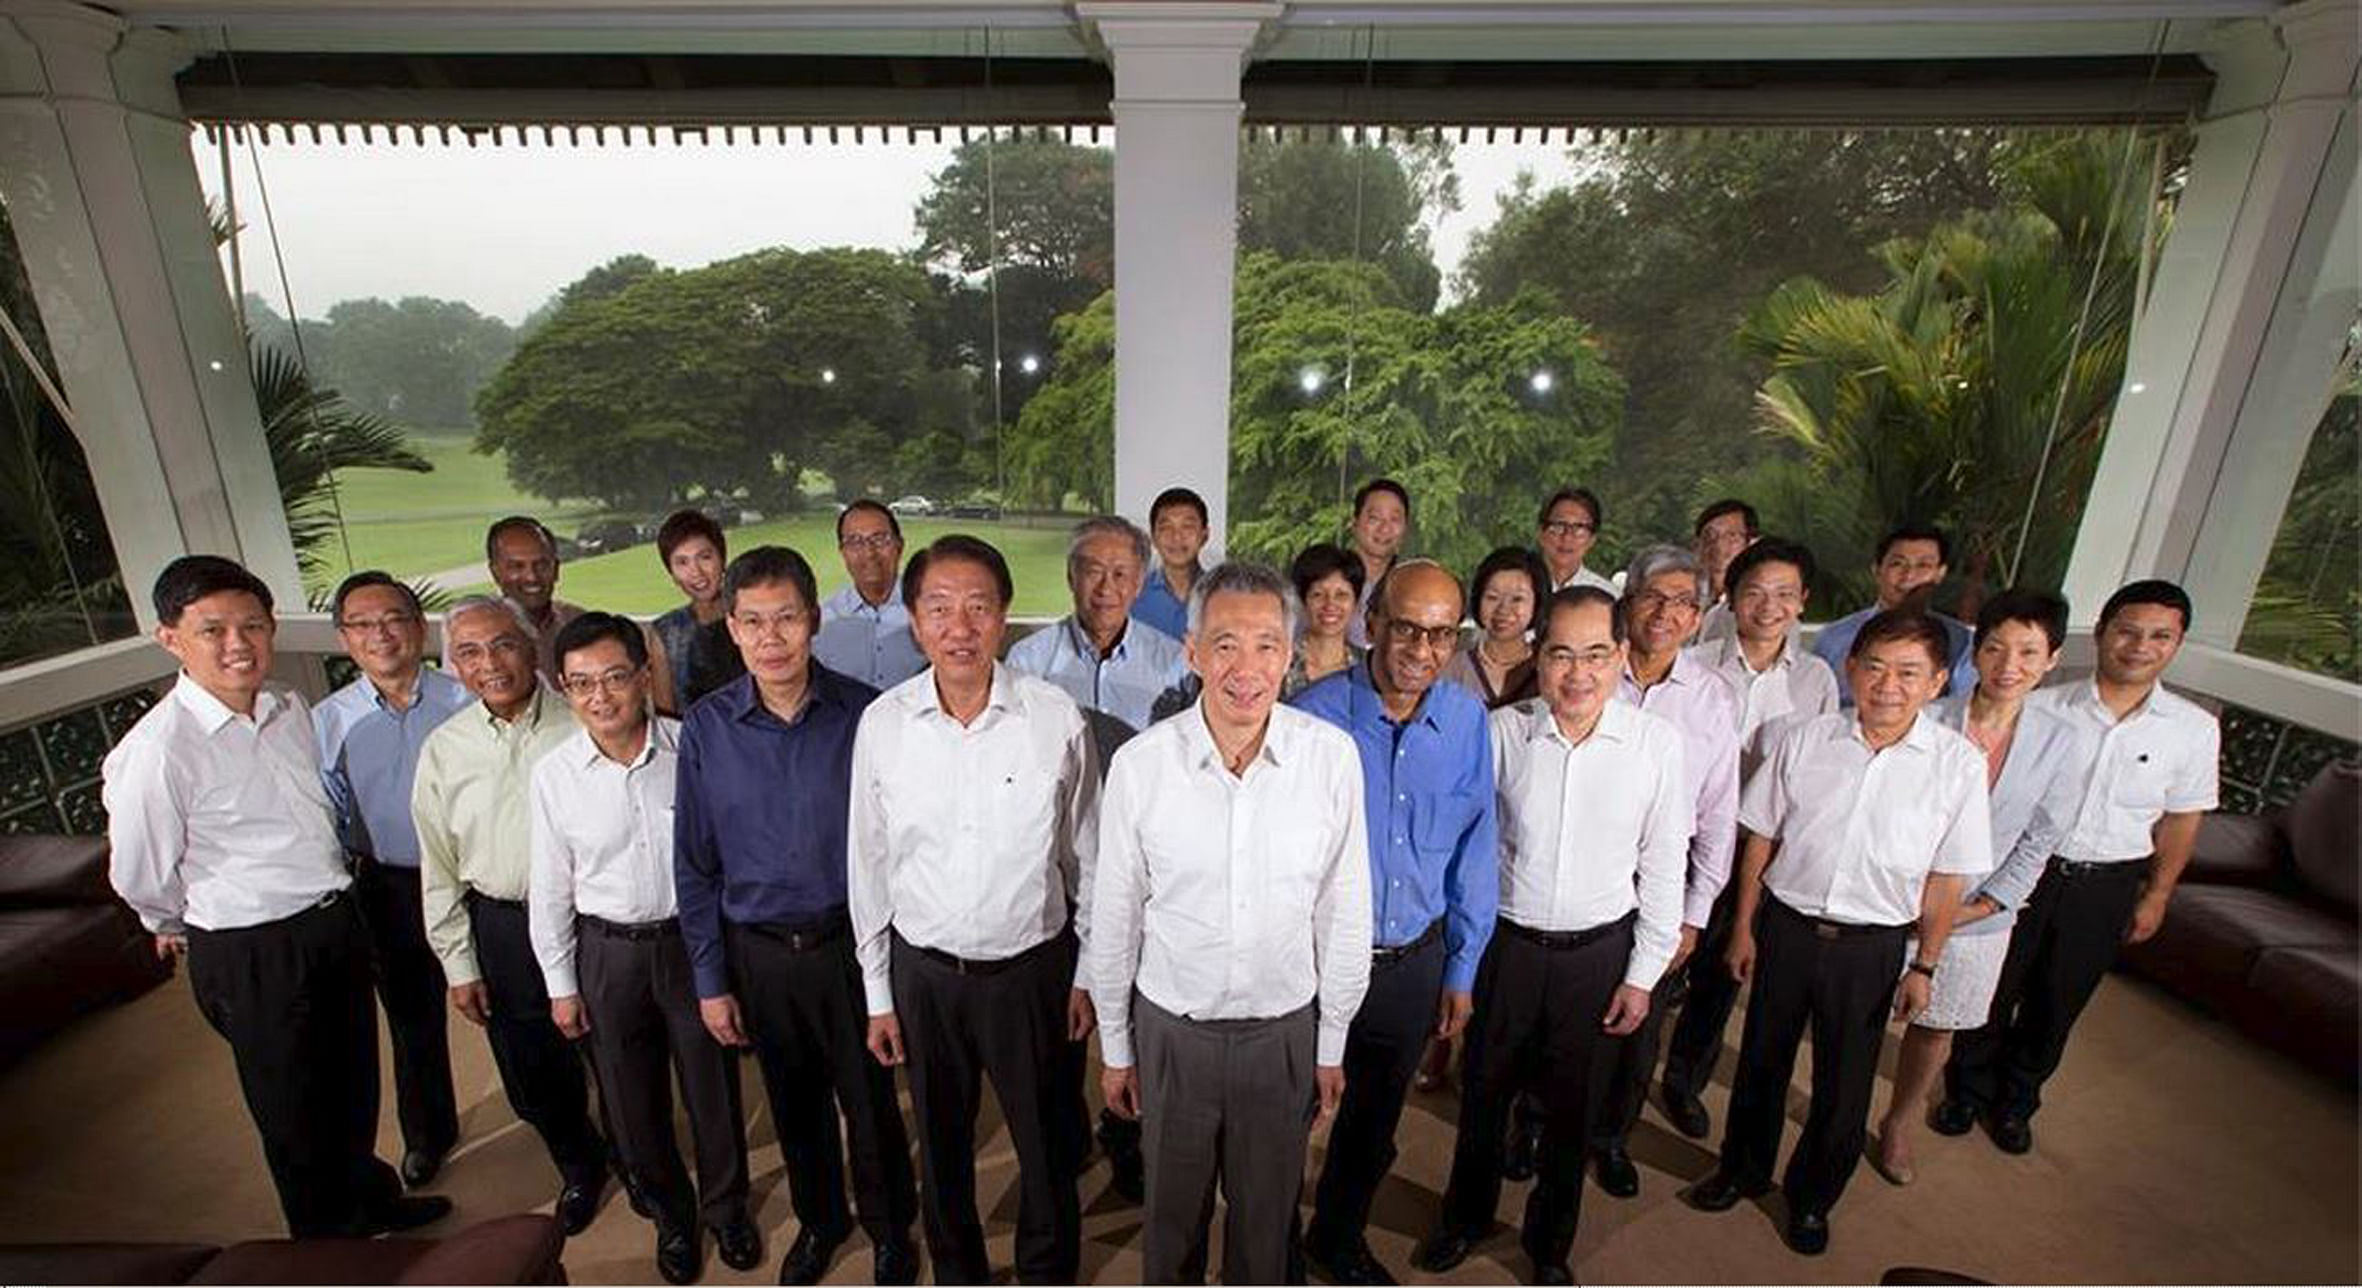 singapore cabinet with 4th generation leaders to be